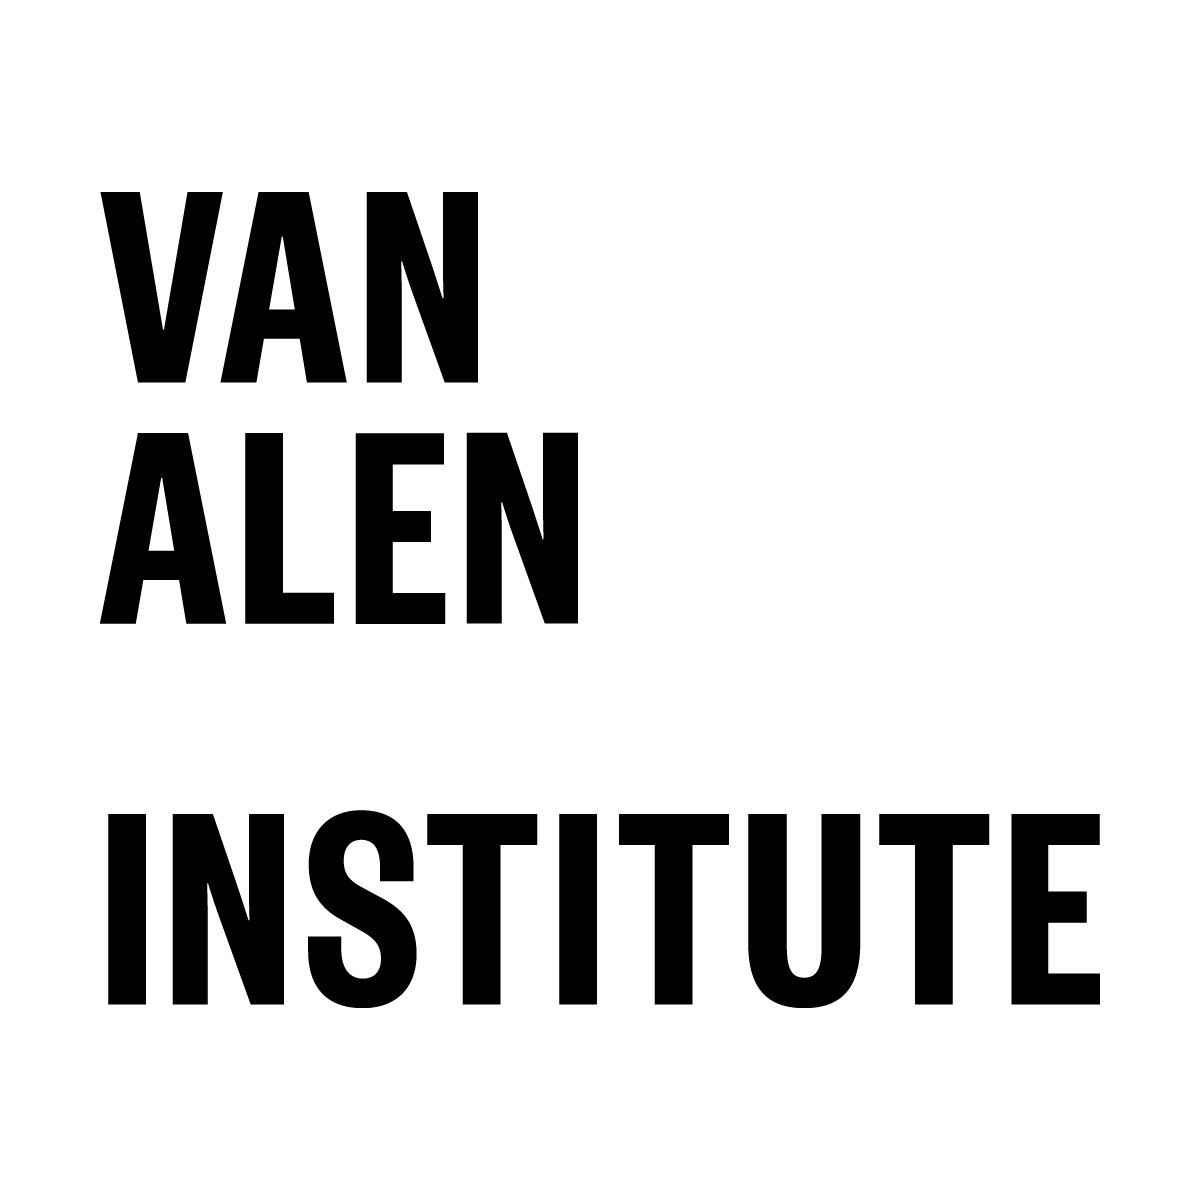 Van Alen Institute Launches Digital Toolkit with 40+ Designs for Reopening and Recovery